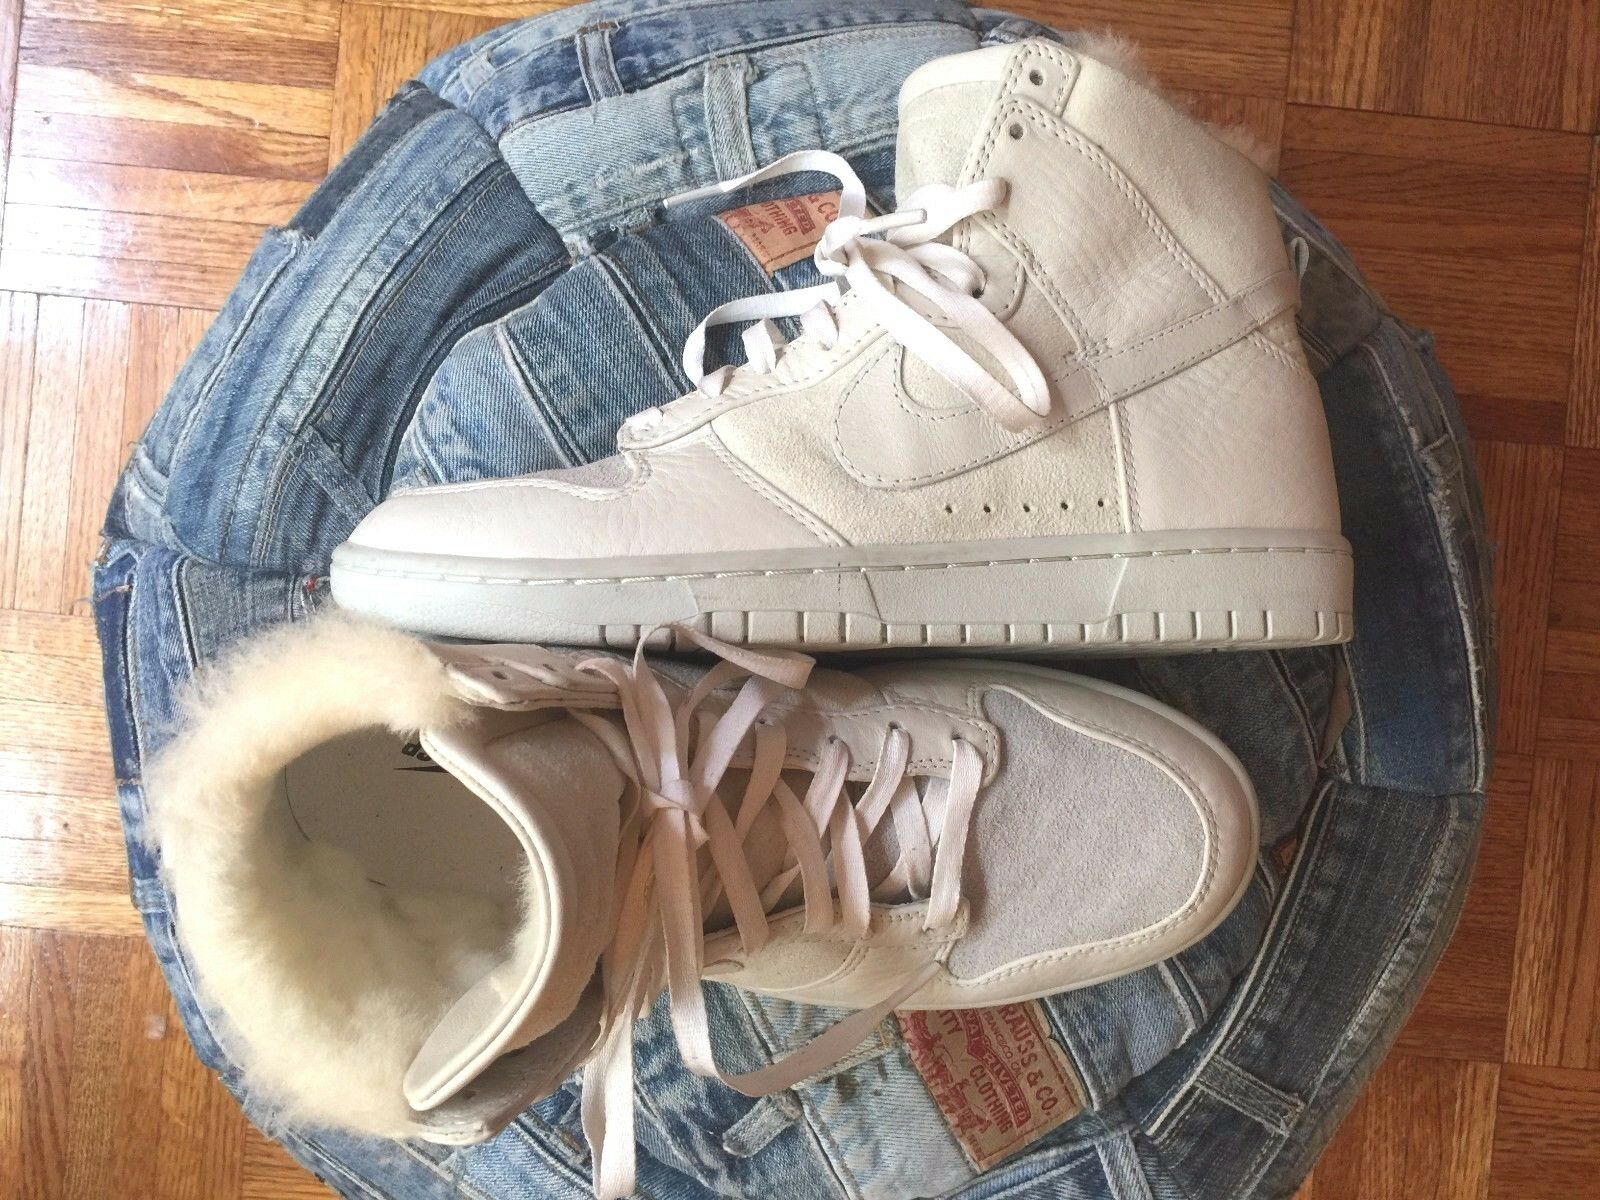 Nike TZ Dunk Shearling Lined (inside around the ankle) Leather High Top Sneakers